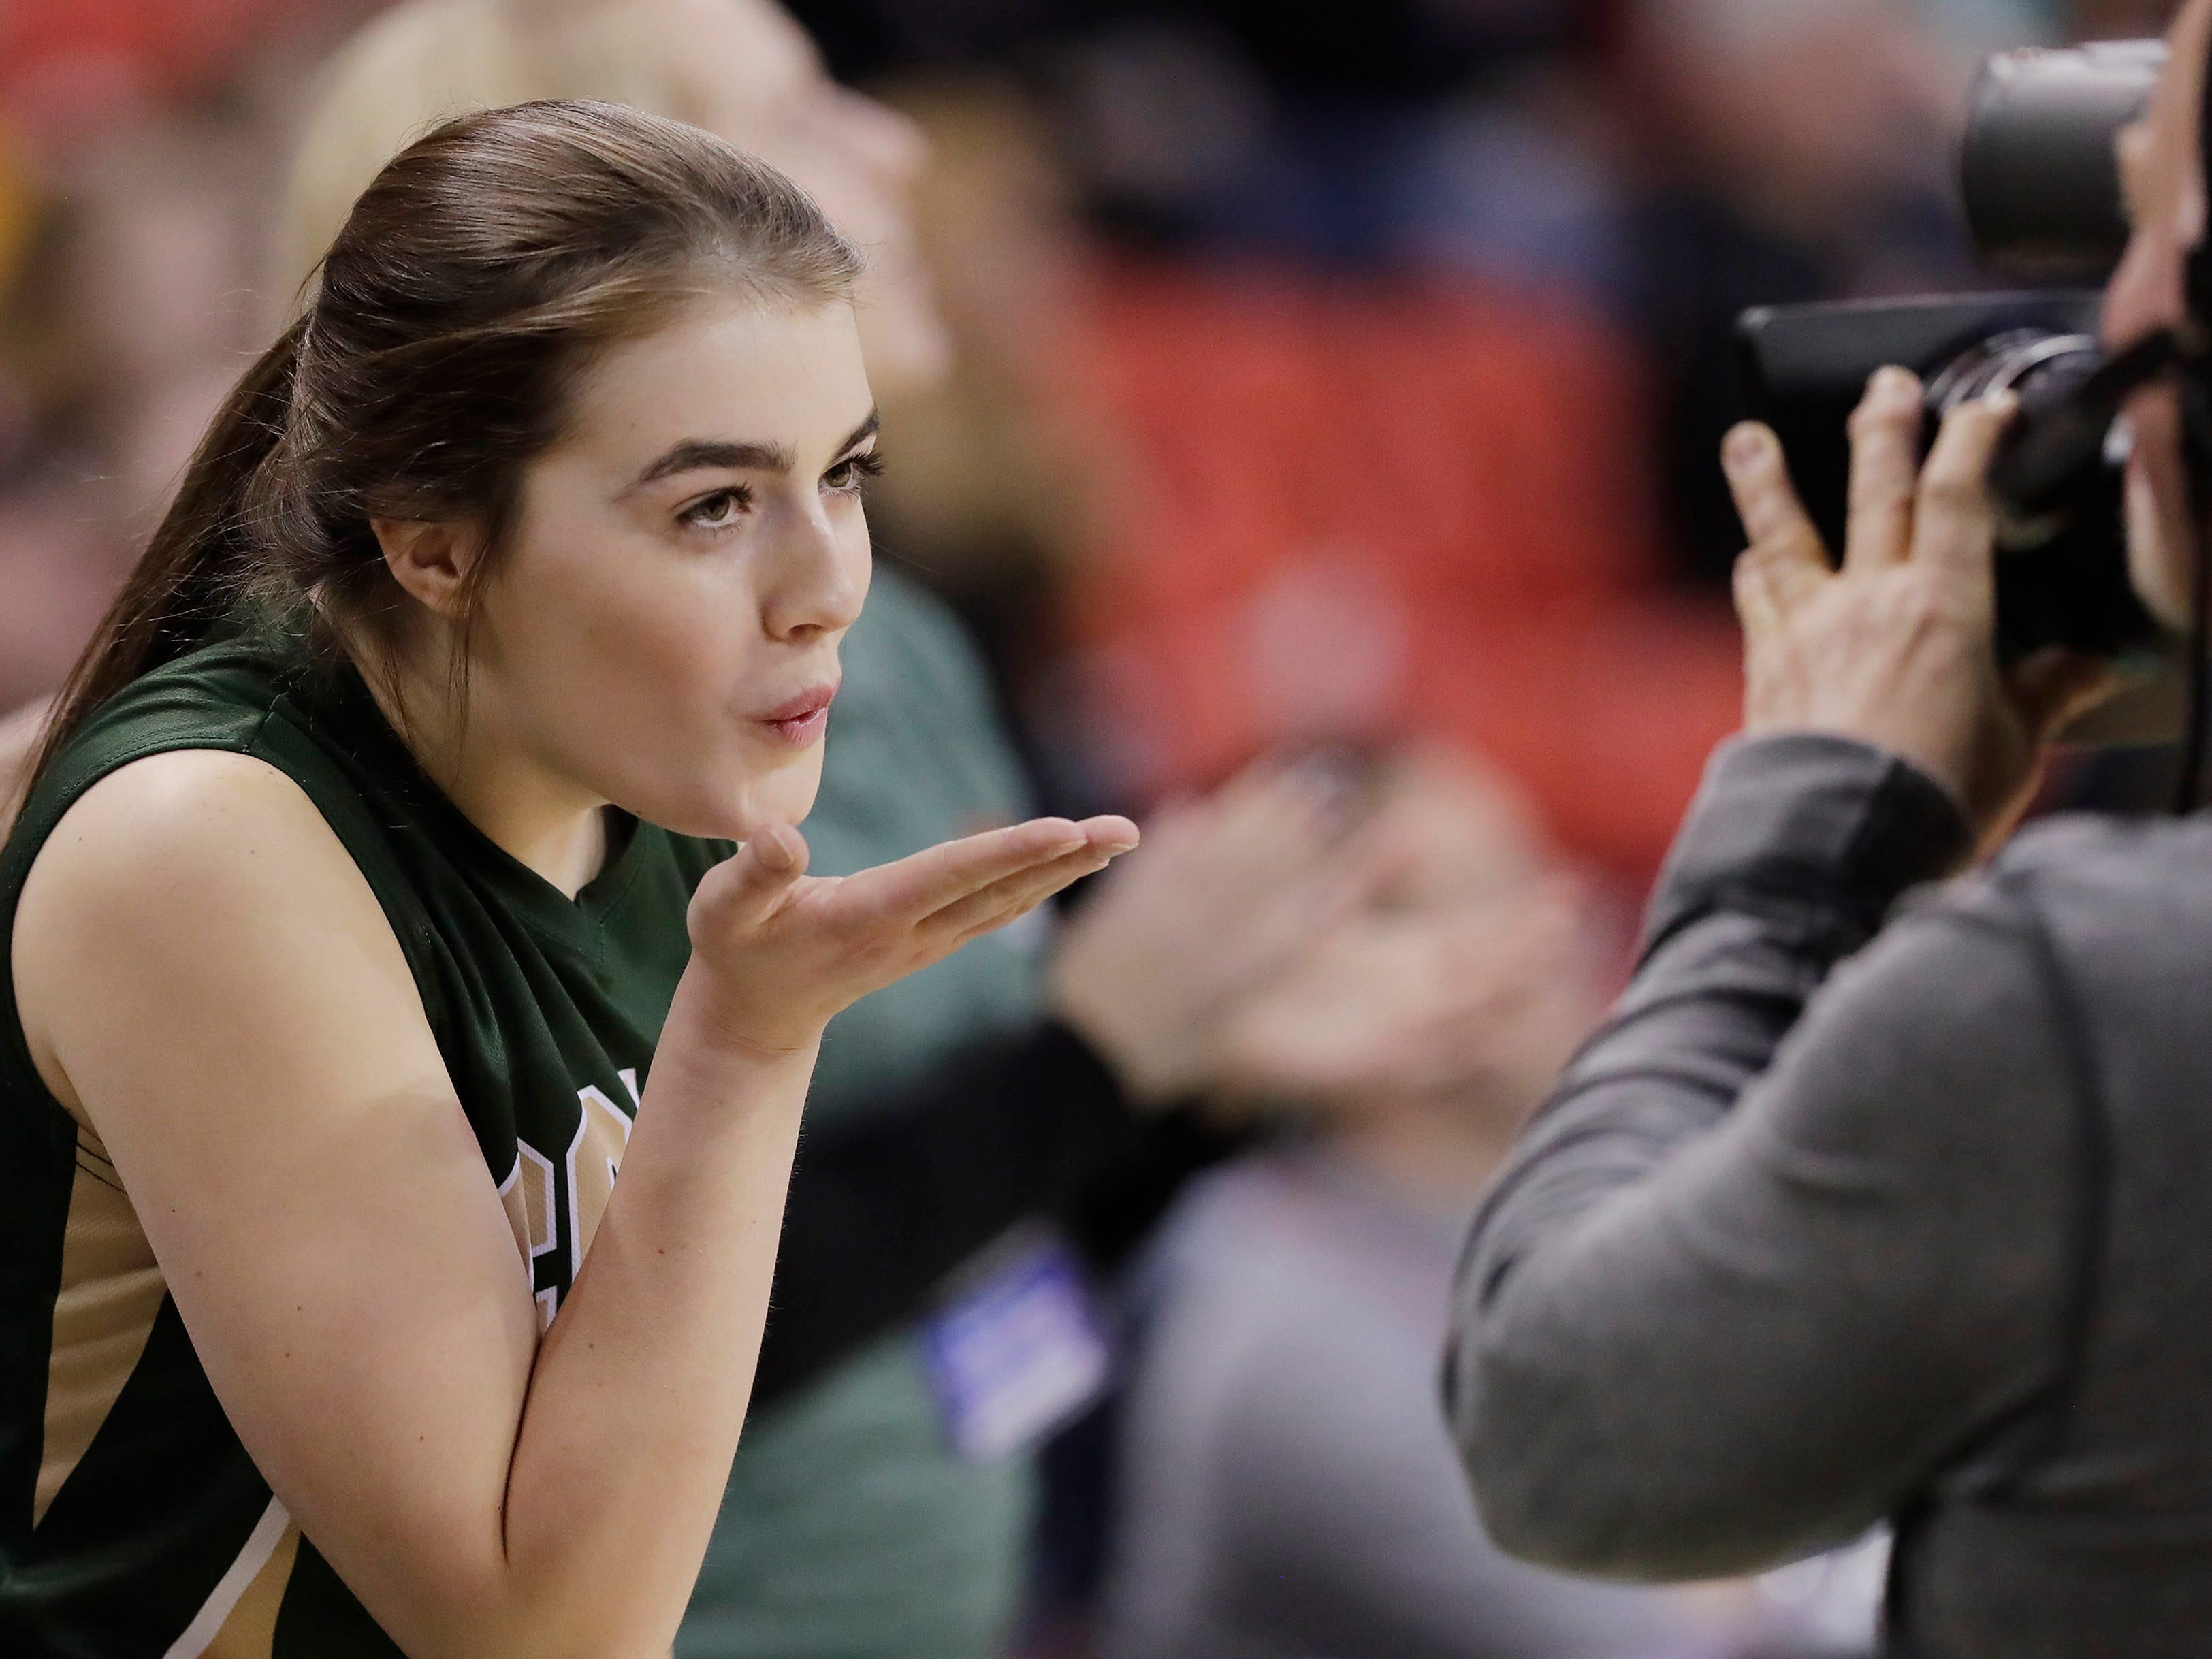 Colby's Lexi Krebsbach (41) blows a kiss at the camera as she is introduced for a Division 3 semifinal at the WIAA state girls basketball tournament at the Resch Center on Thursday, March 7, 2019, in Ashwaubenon, Wis.